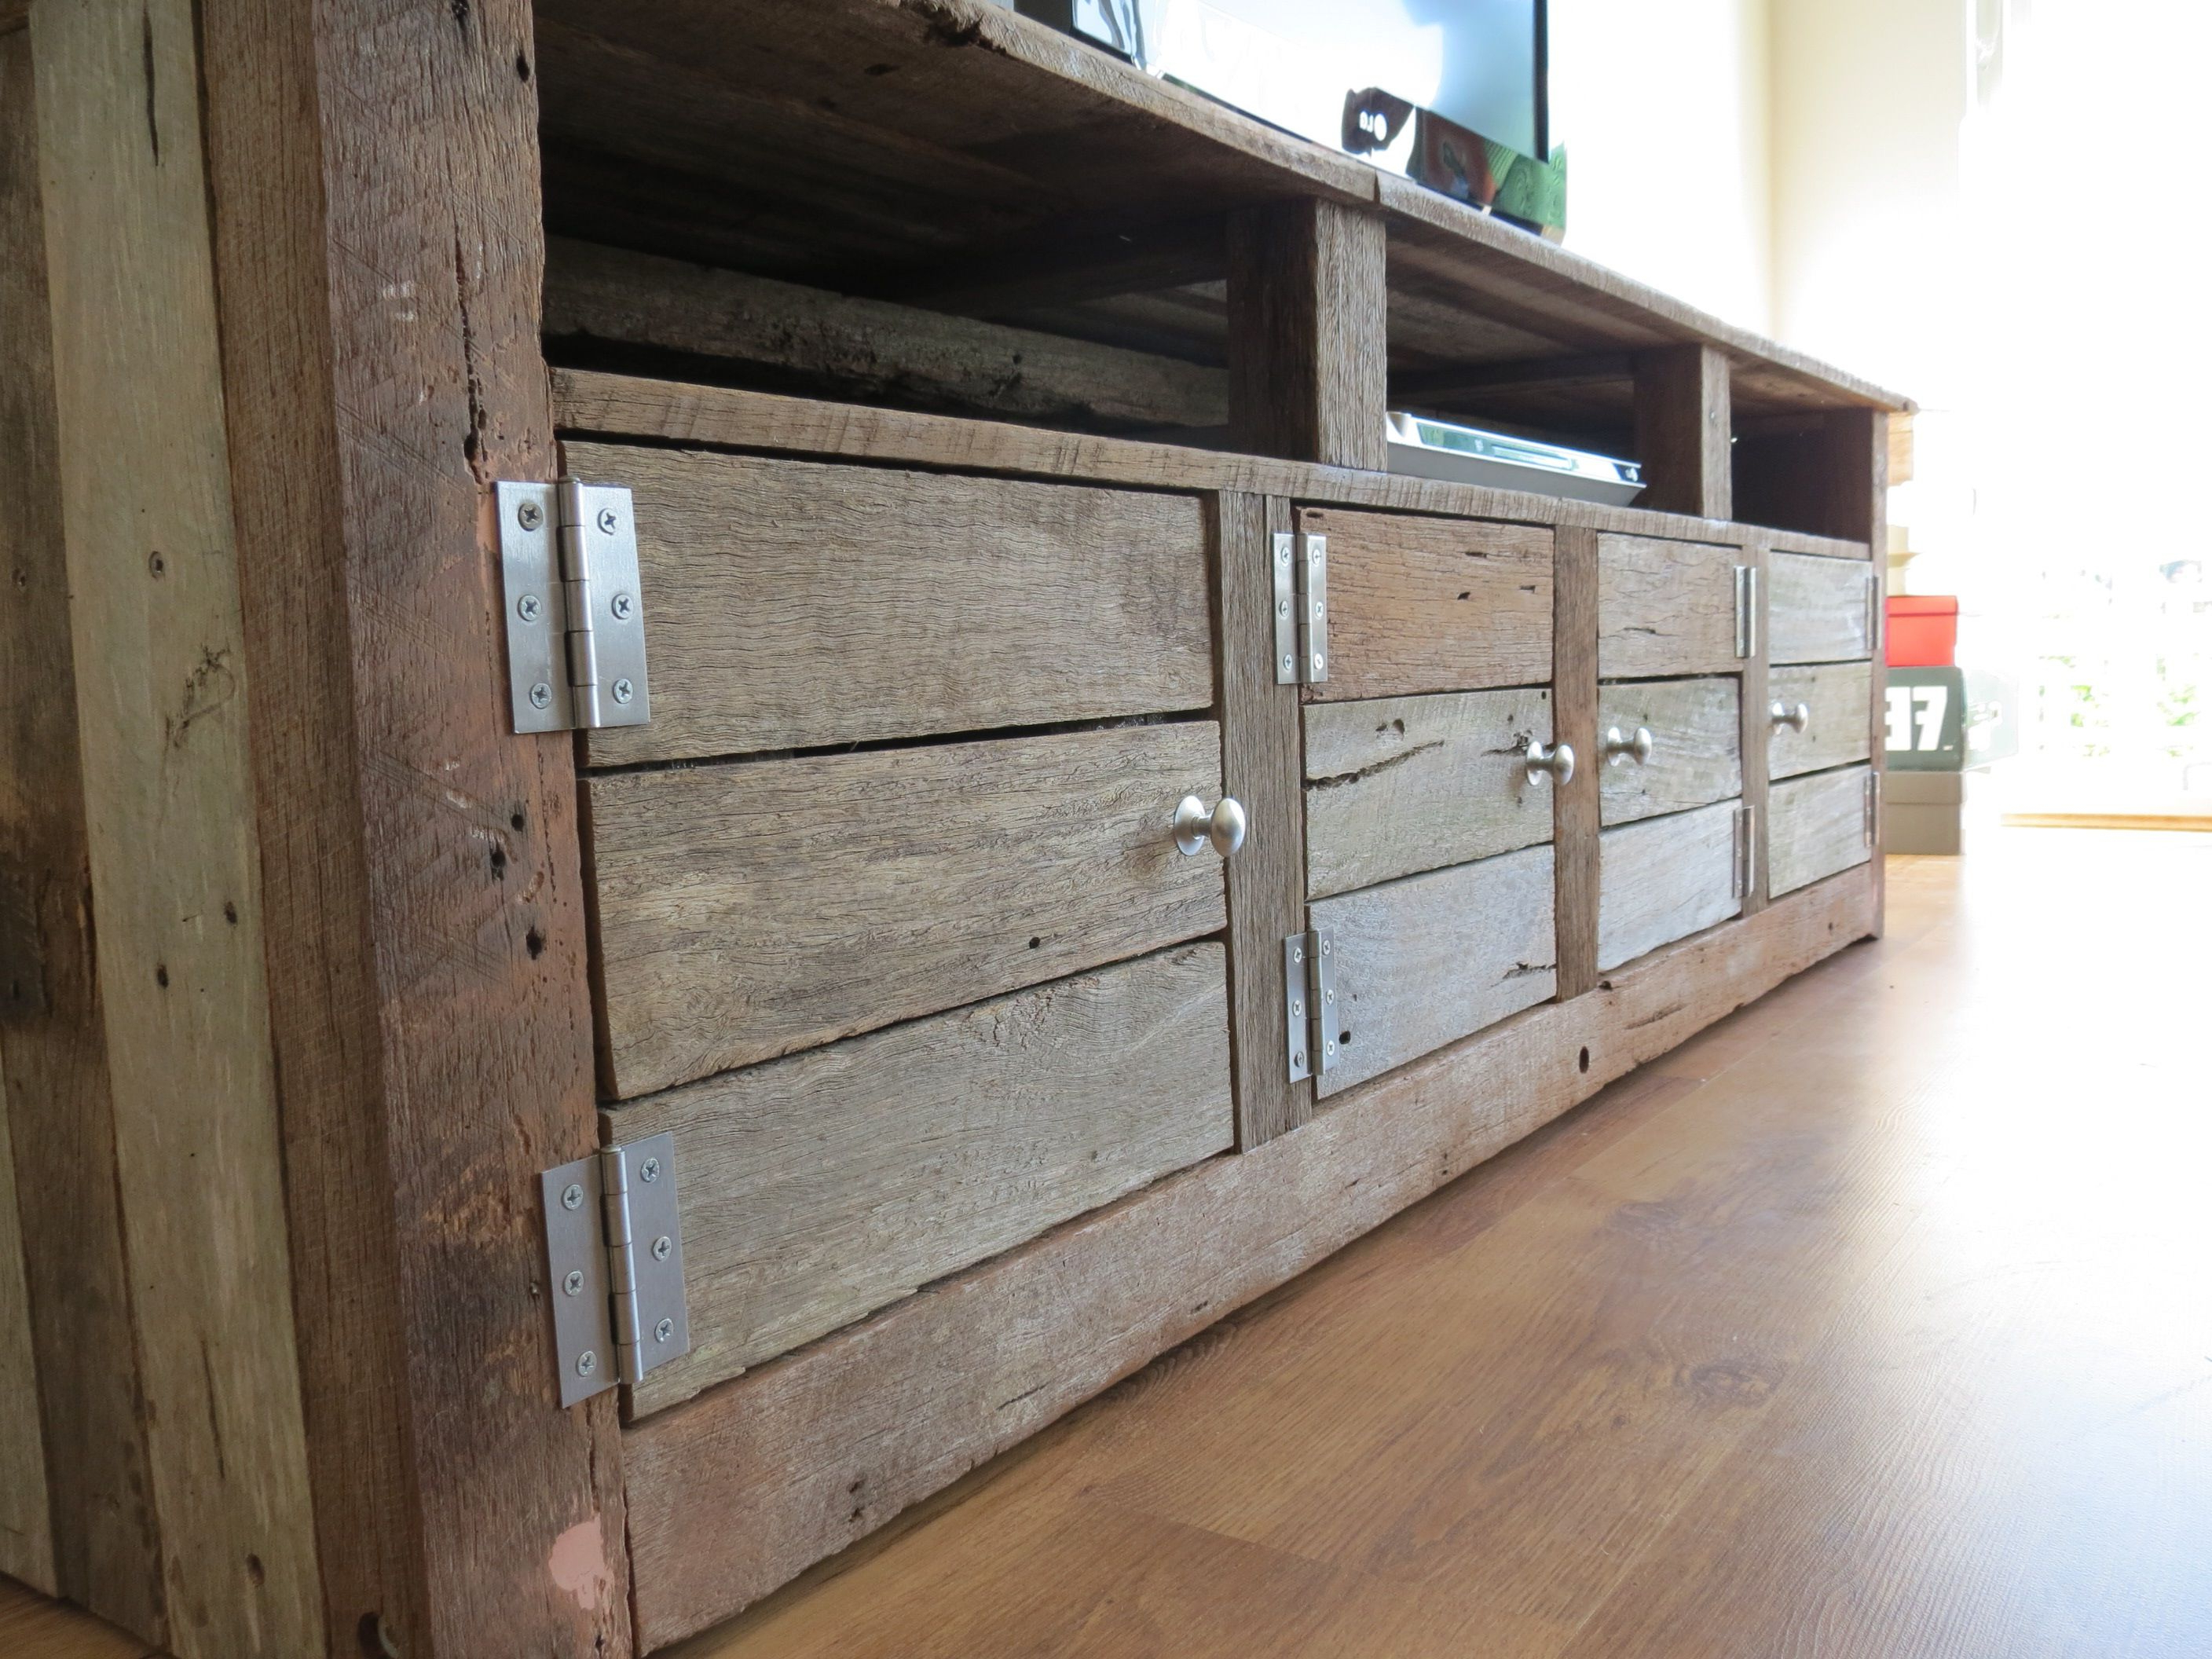 Low Line Tv Unit Made From Recycled Timber | New Home Sweet Home Inside Kilian Black 74 Inch Tv Stands (Gallery 5 of 20)